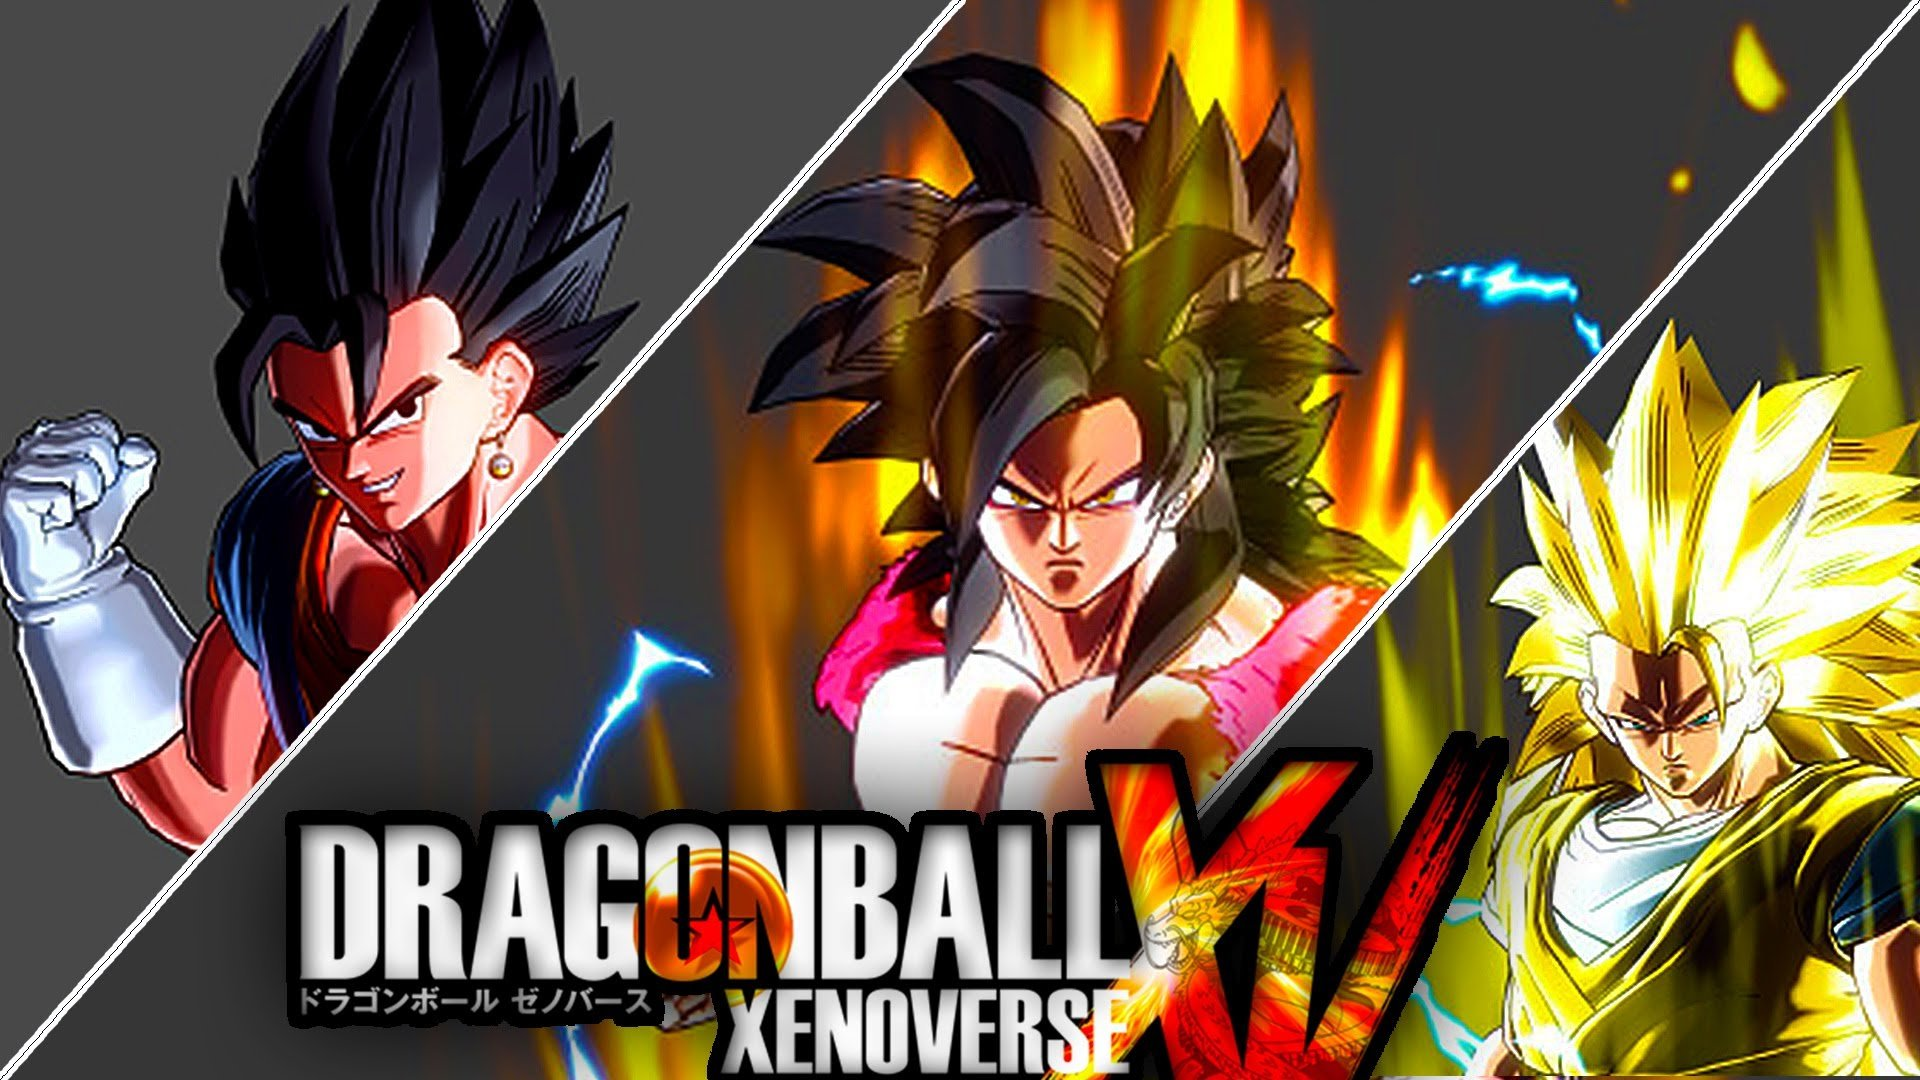 Free Download Dragon Ball Xenoverse 2 Hd Wallpapers And Background